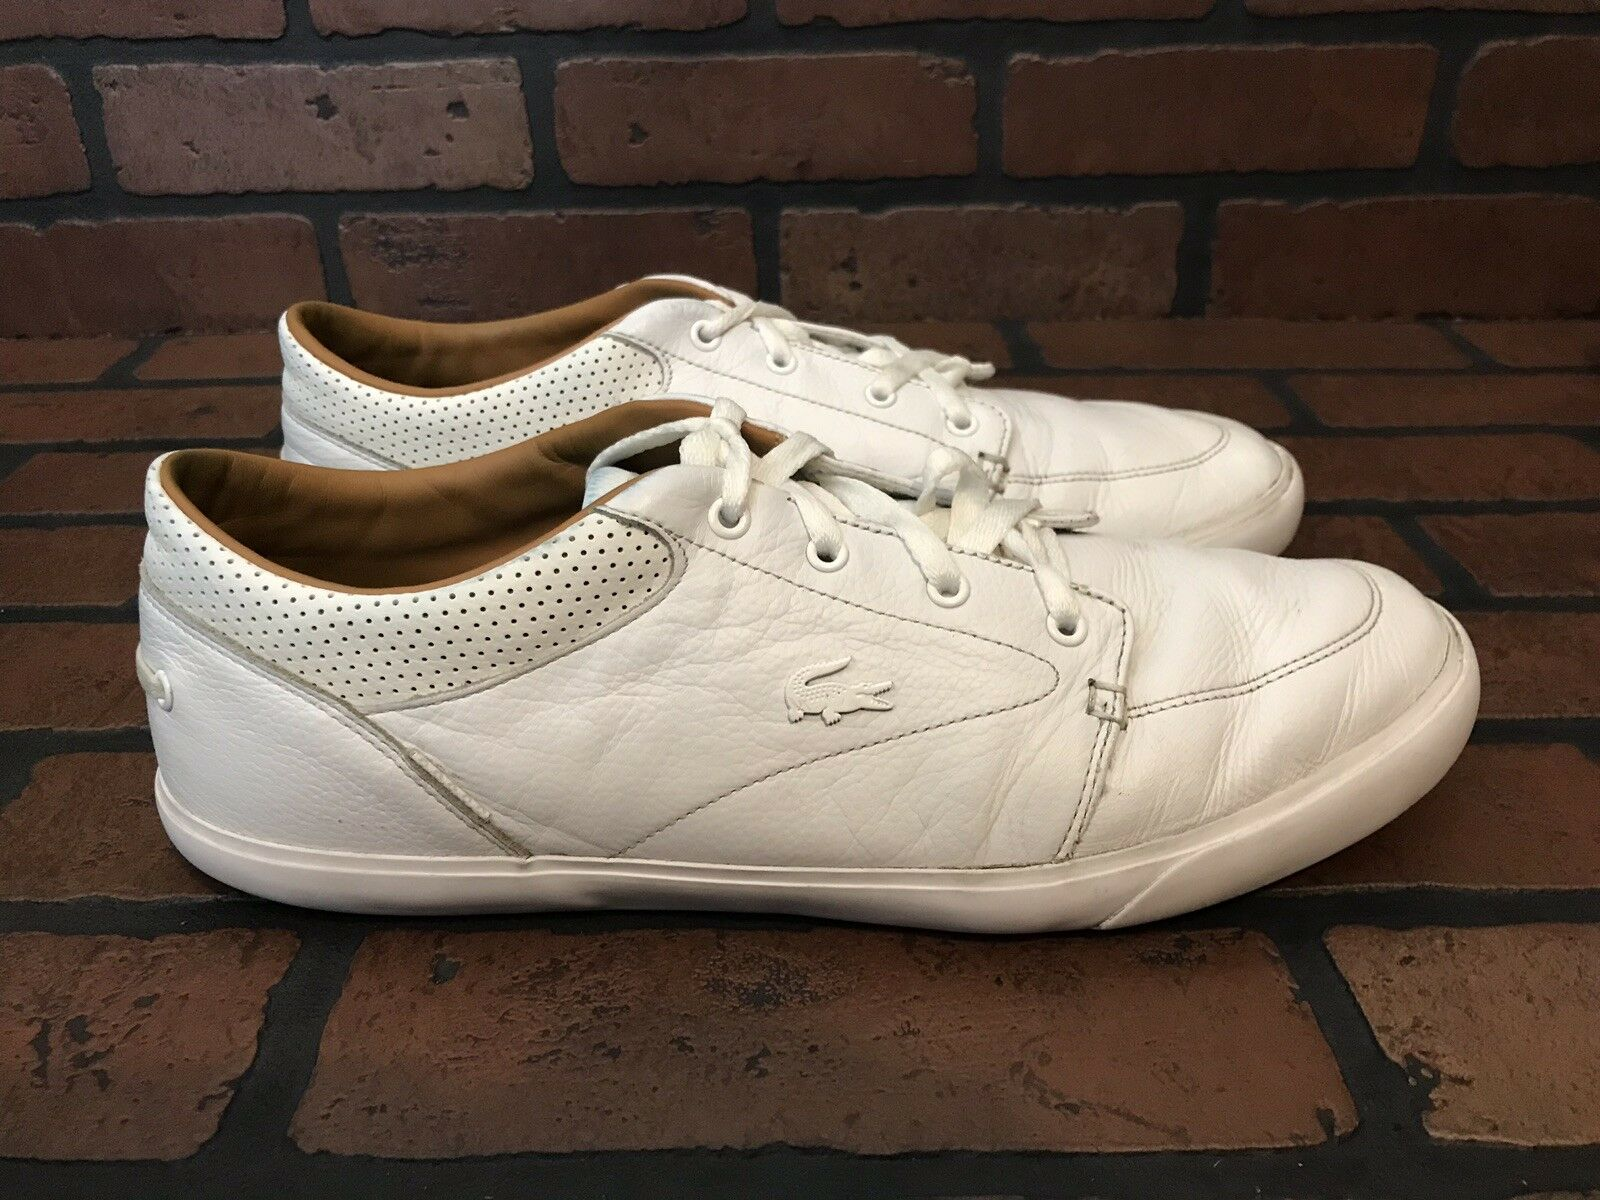 Lacoste Sneakers All White Leather Size 11.5